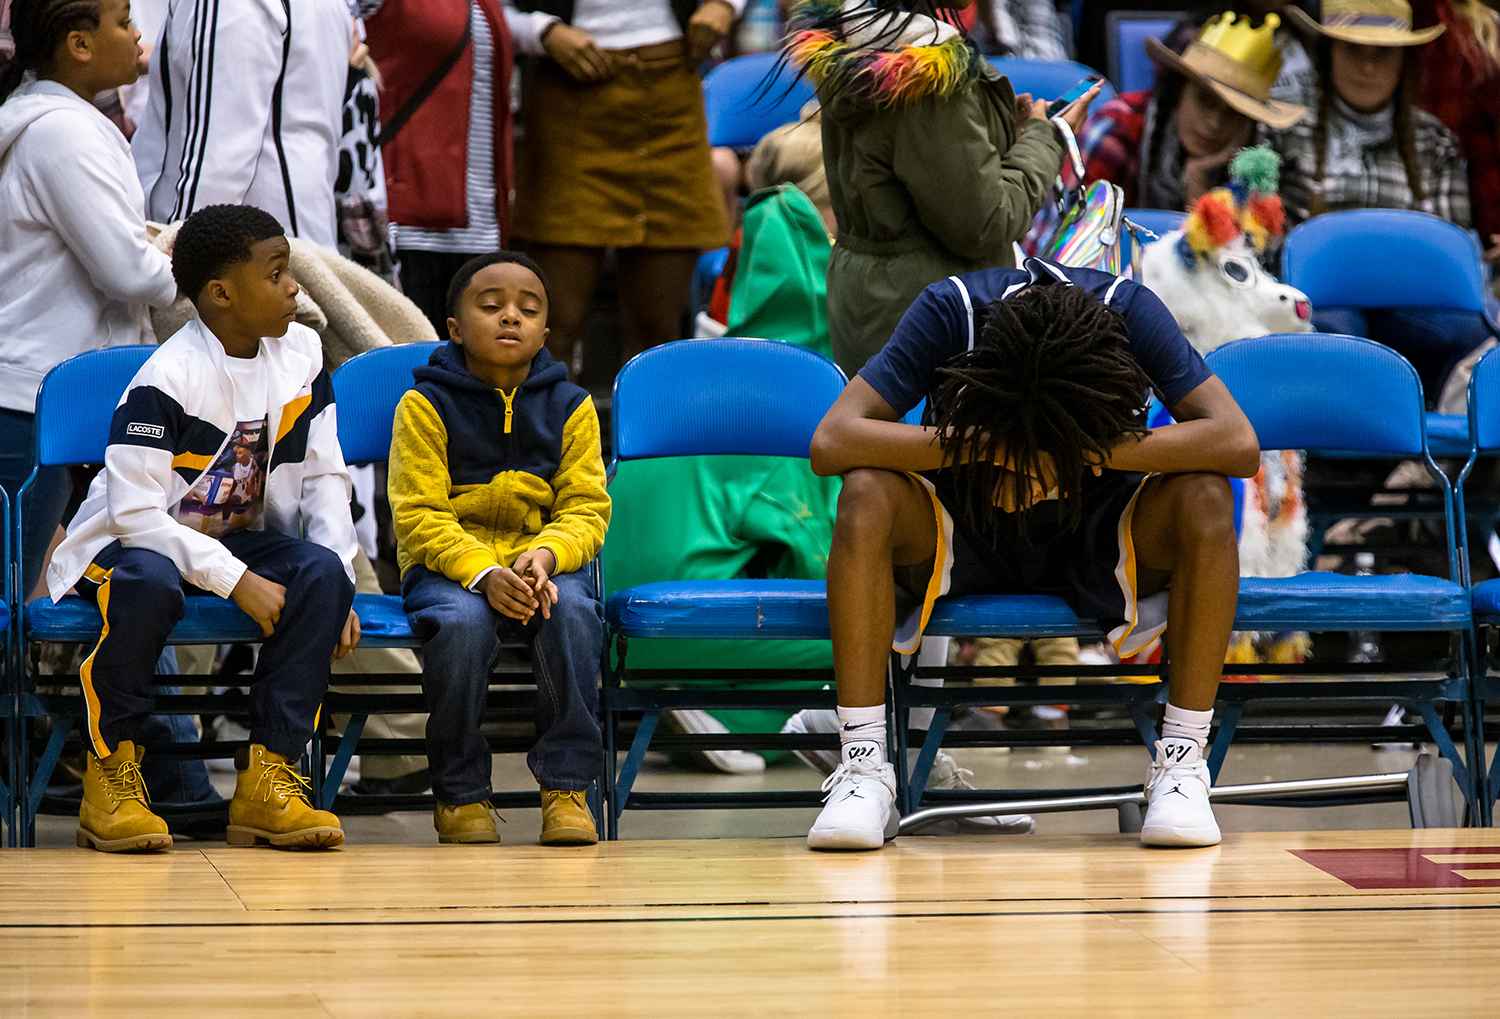 Southeast's Terrion Murdix (4) puts his head down on the bench as the Spartans watch Southeast's Herb McMath (41) get medical attention after an injury in the second quarter on opening night of the Boys City Tournament at the Bank of Springfield Center, Wednesday, Jan. 16, 2019, in Springfield, Ill. [Justin L. Fowler/The State Journal-Register]